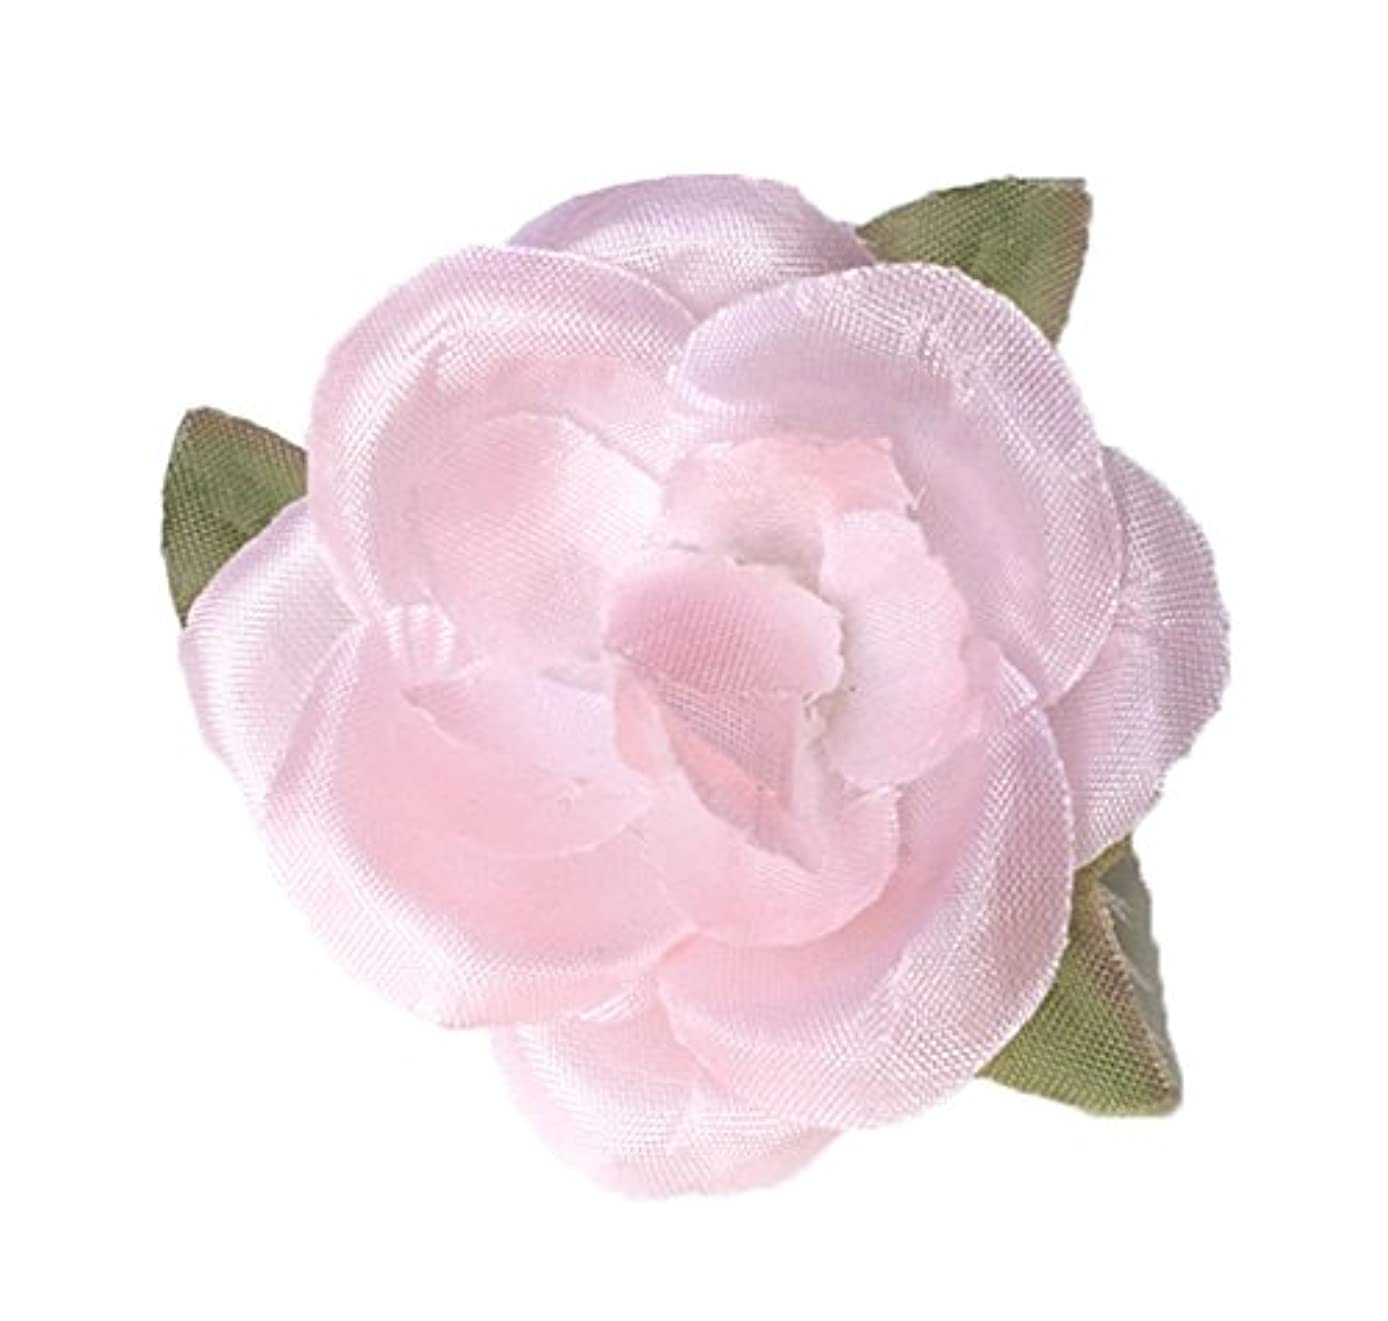 Cuteque International Soft Small Silk Rose with Tri-Shape Fall Leaves for Scrapbooking (6 Pack), 1.75